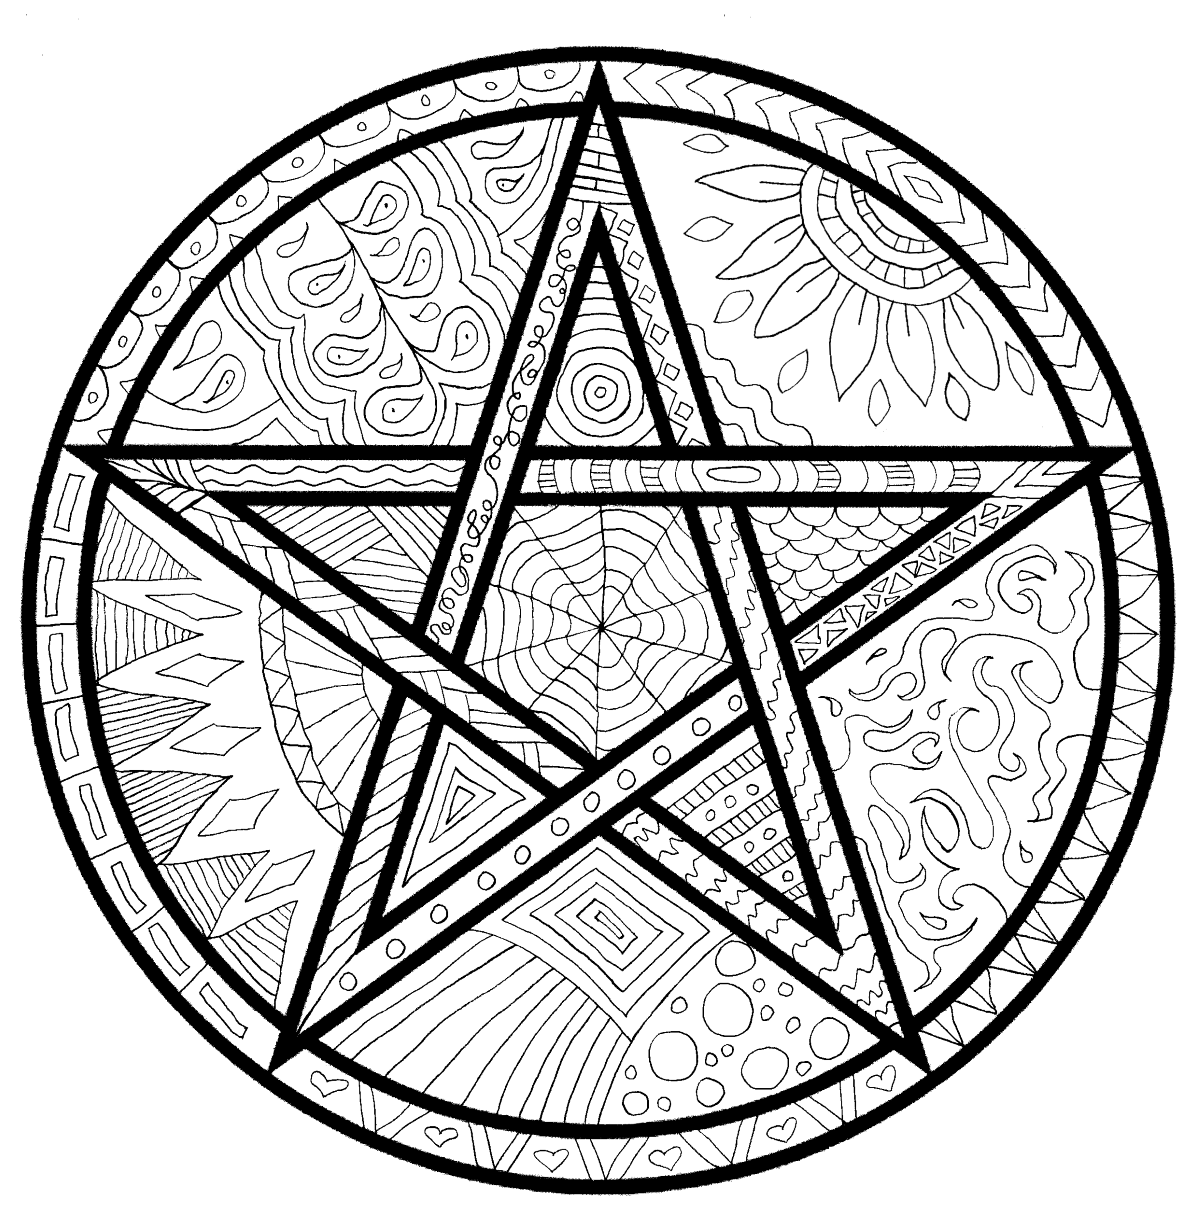 Detailed Pagan Coloring Pages For Adults Or Kids